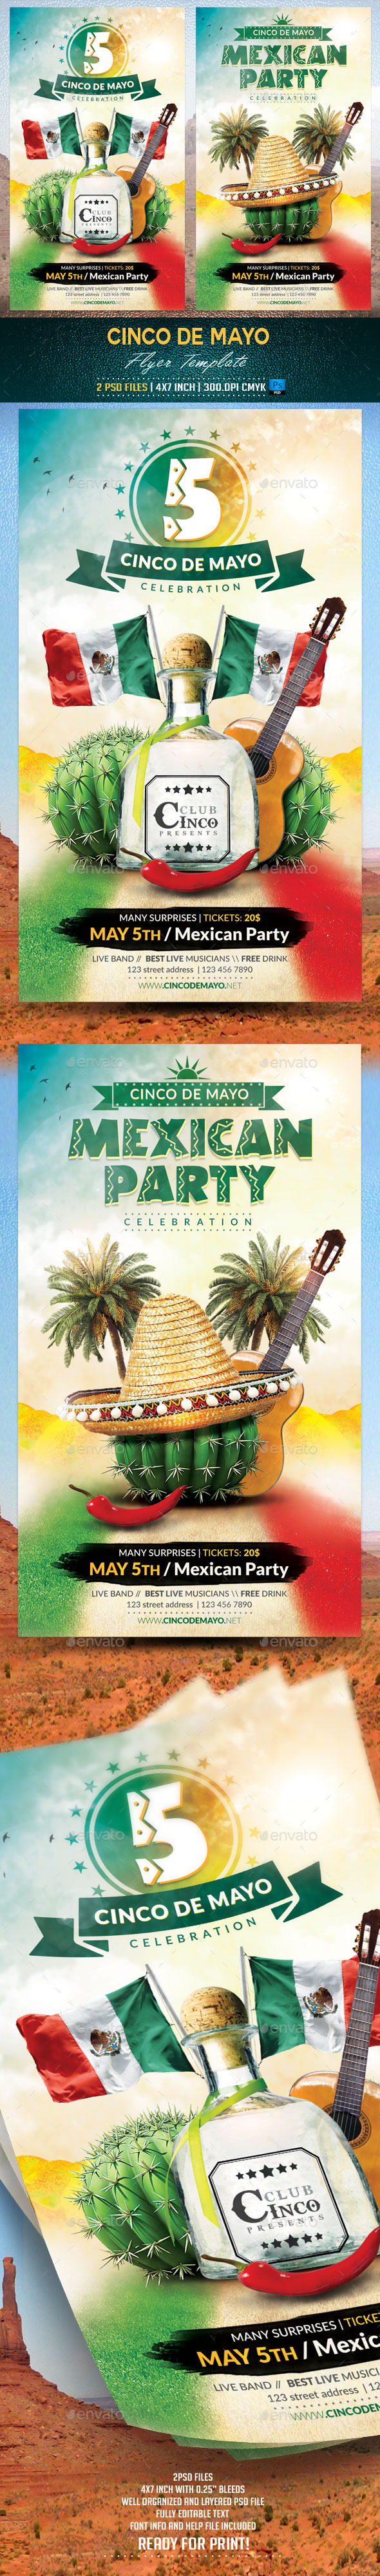 GraphicRiver Cinco de Mayo Flyer Template v2 11012493